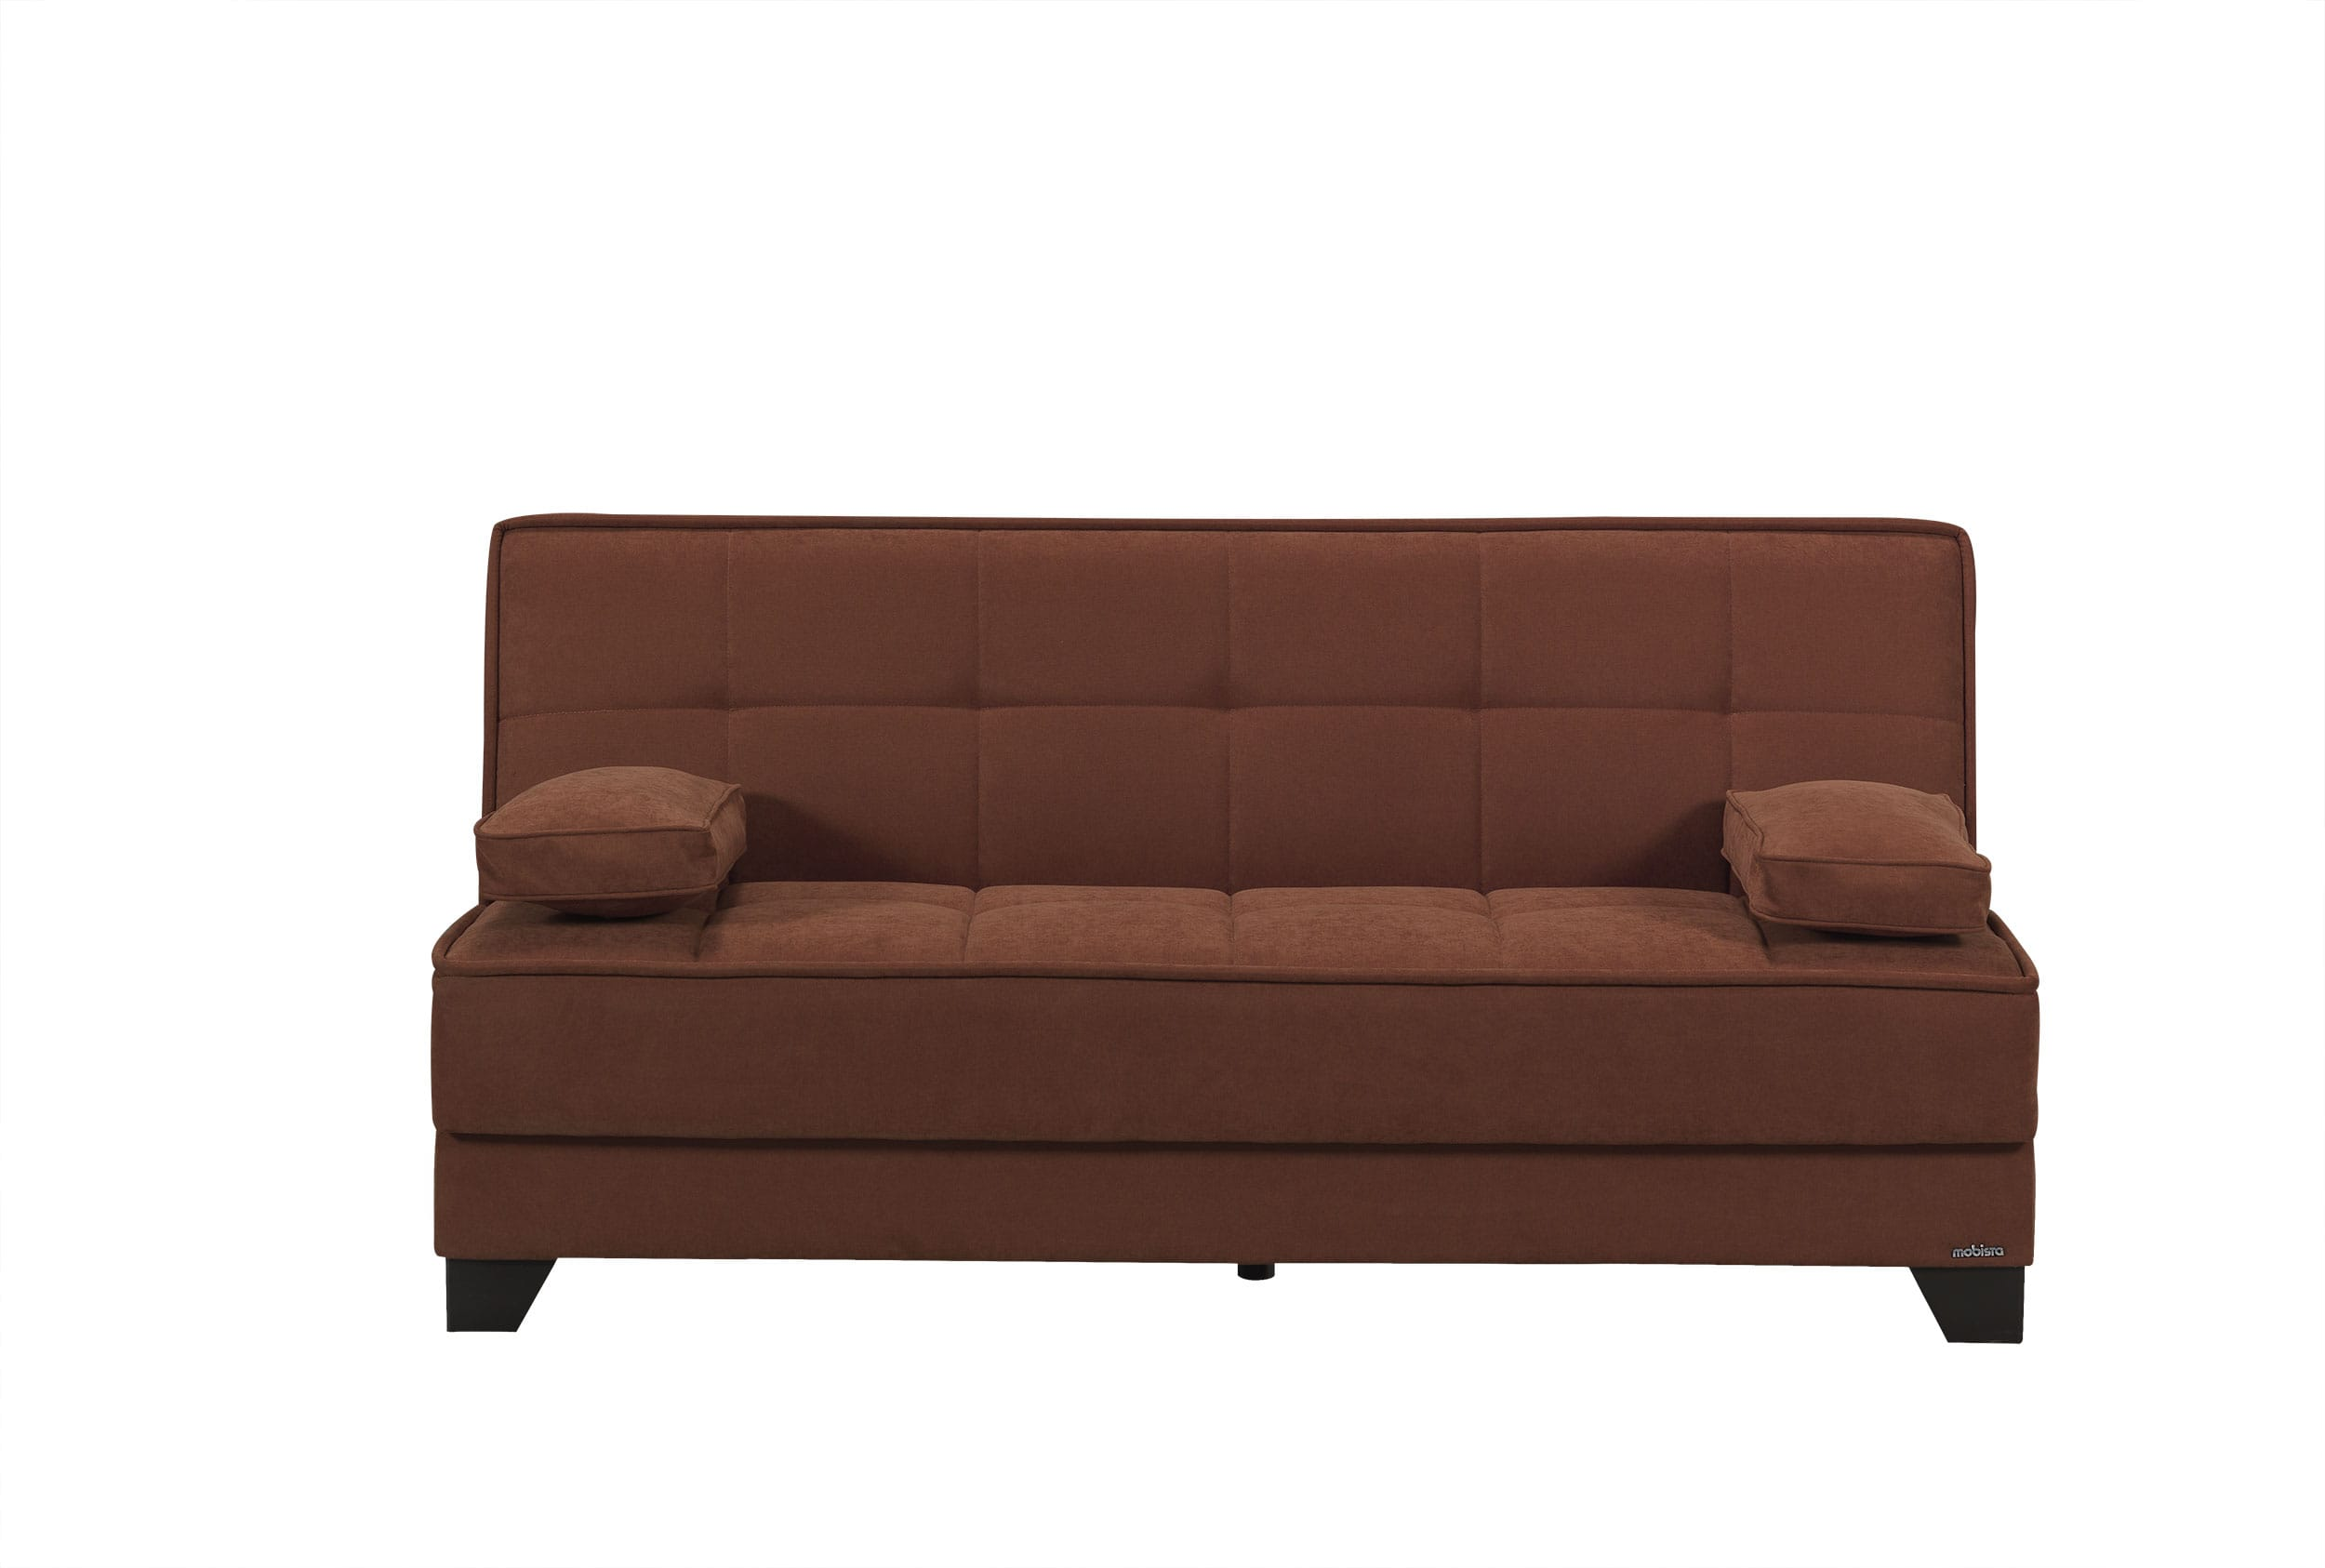 Nexo Carisma Terra Cotta Sofa Bed By Mobista